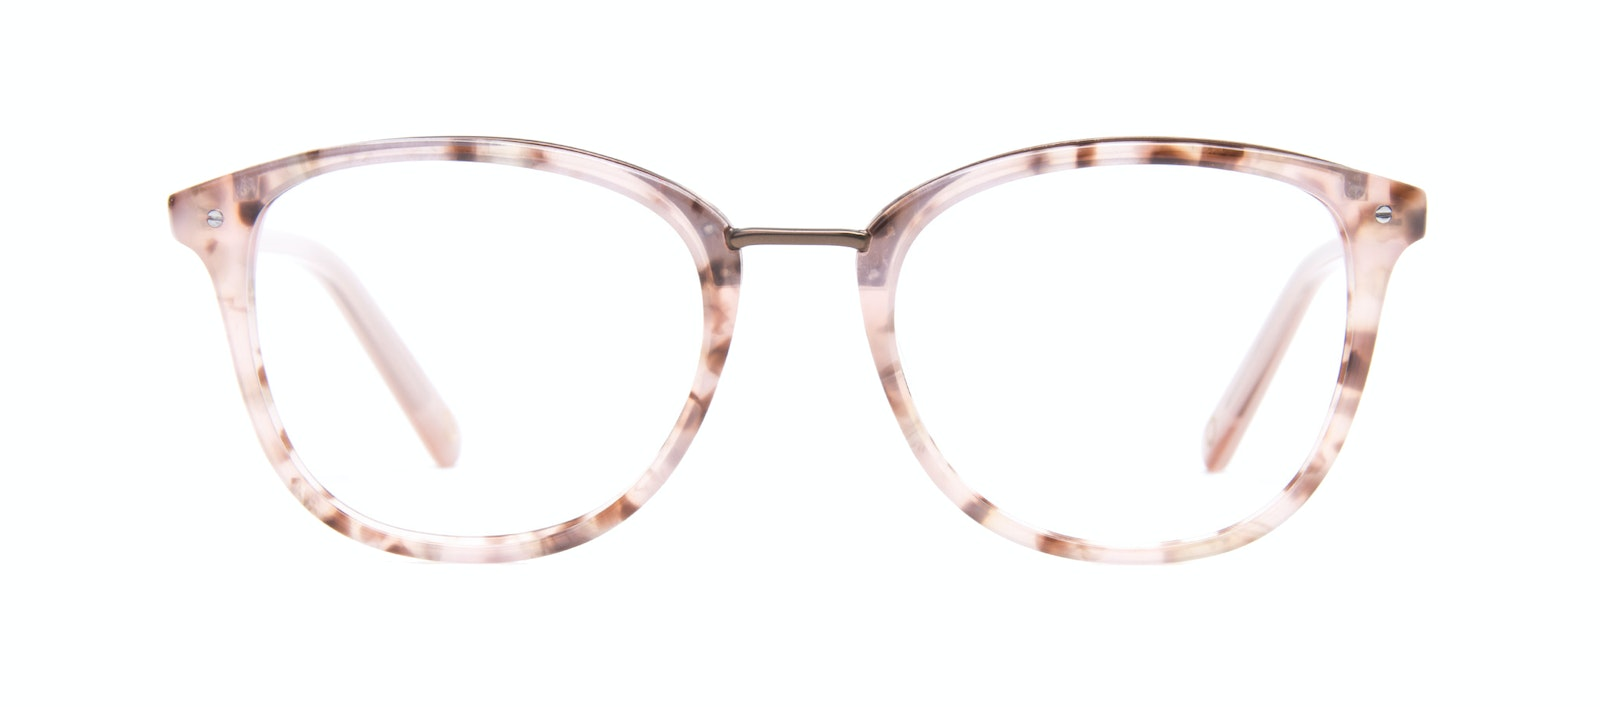 Affordable Fashion Glasses Square Round Eyeglasses Women Bella Blush Tortie Front